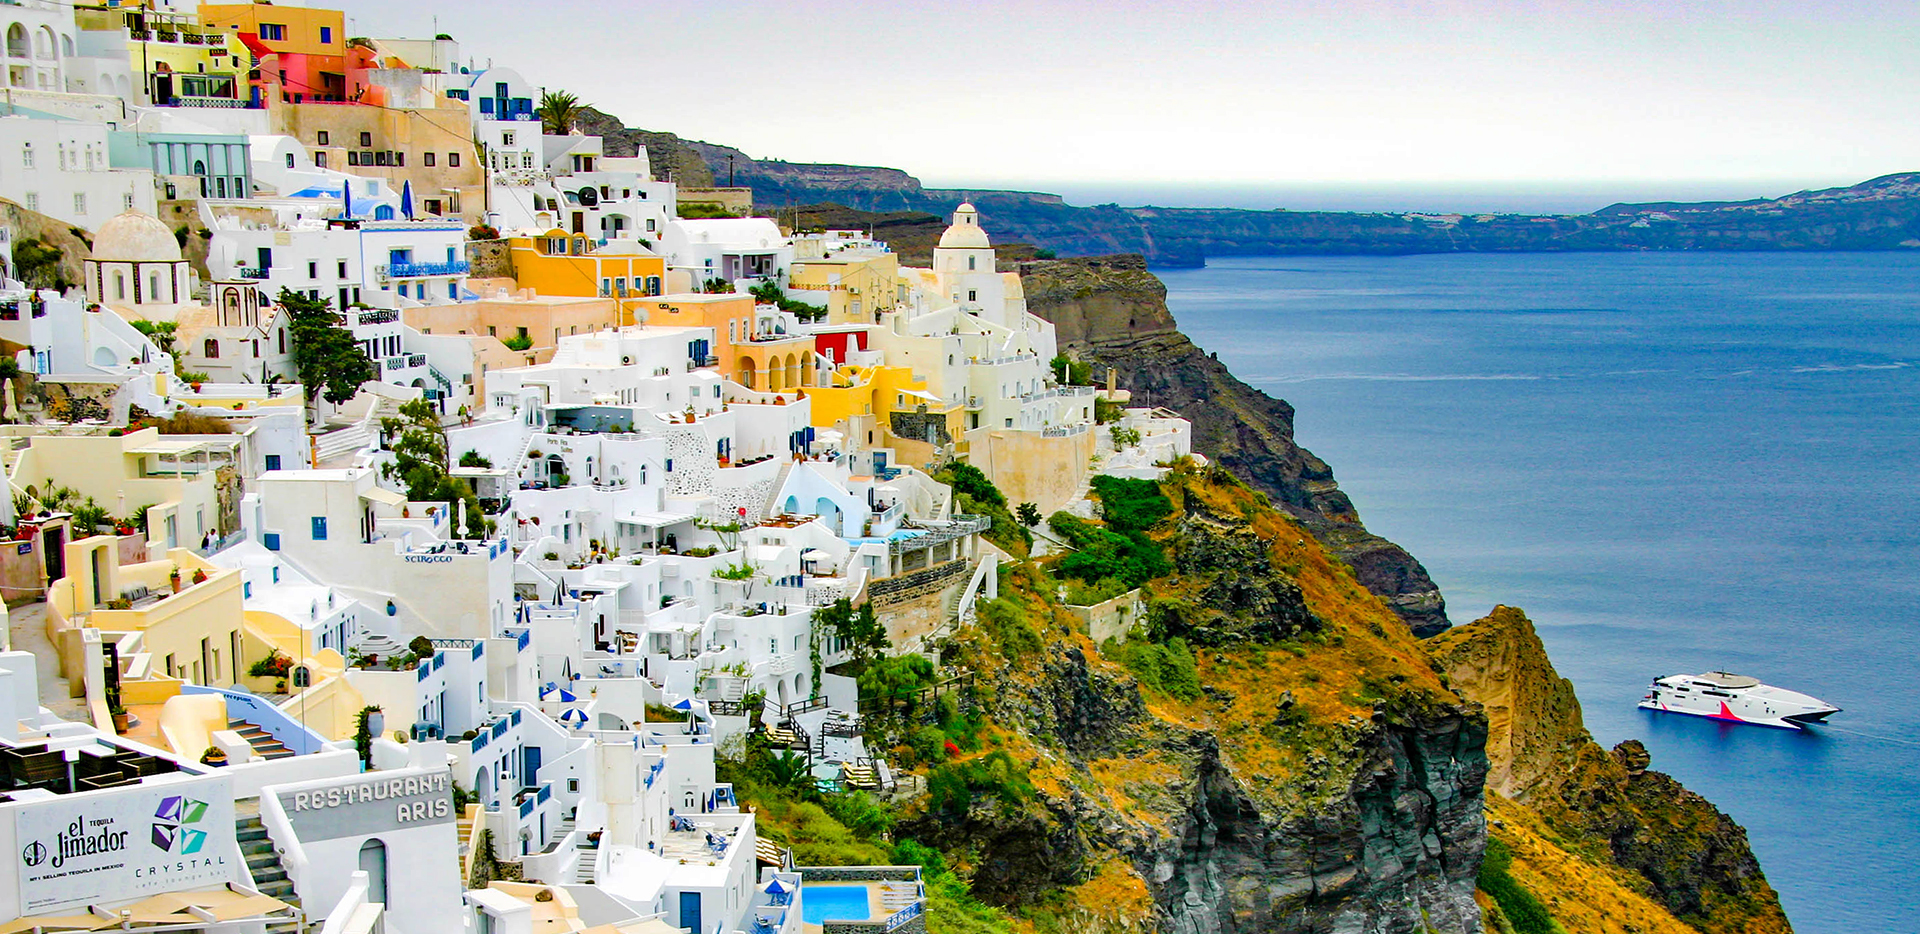 Fira White Buildings Overlooking Ocean and Boat